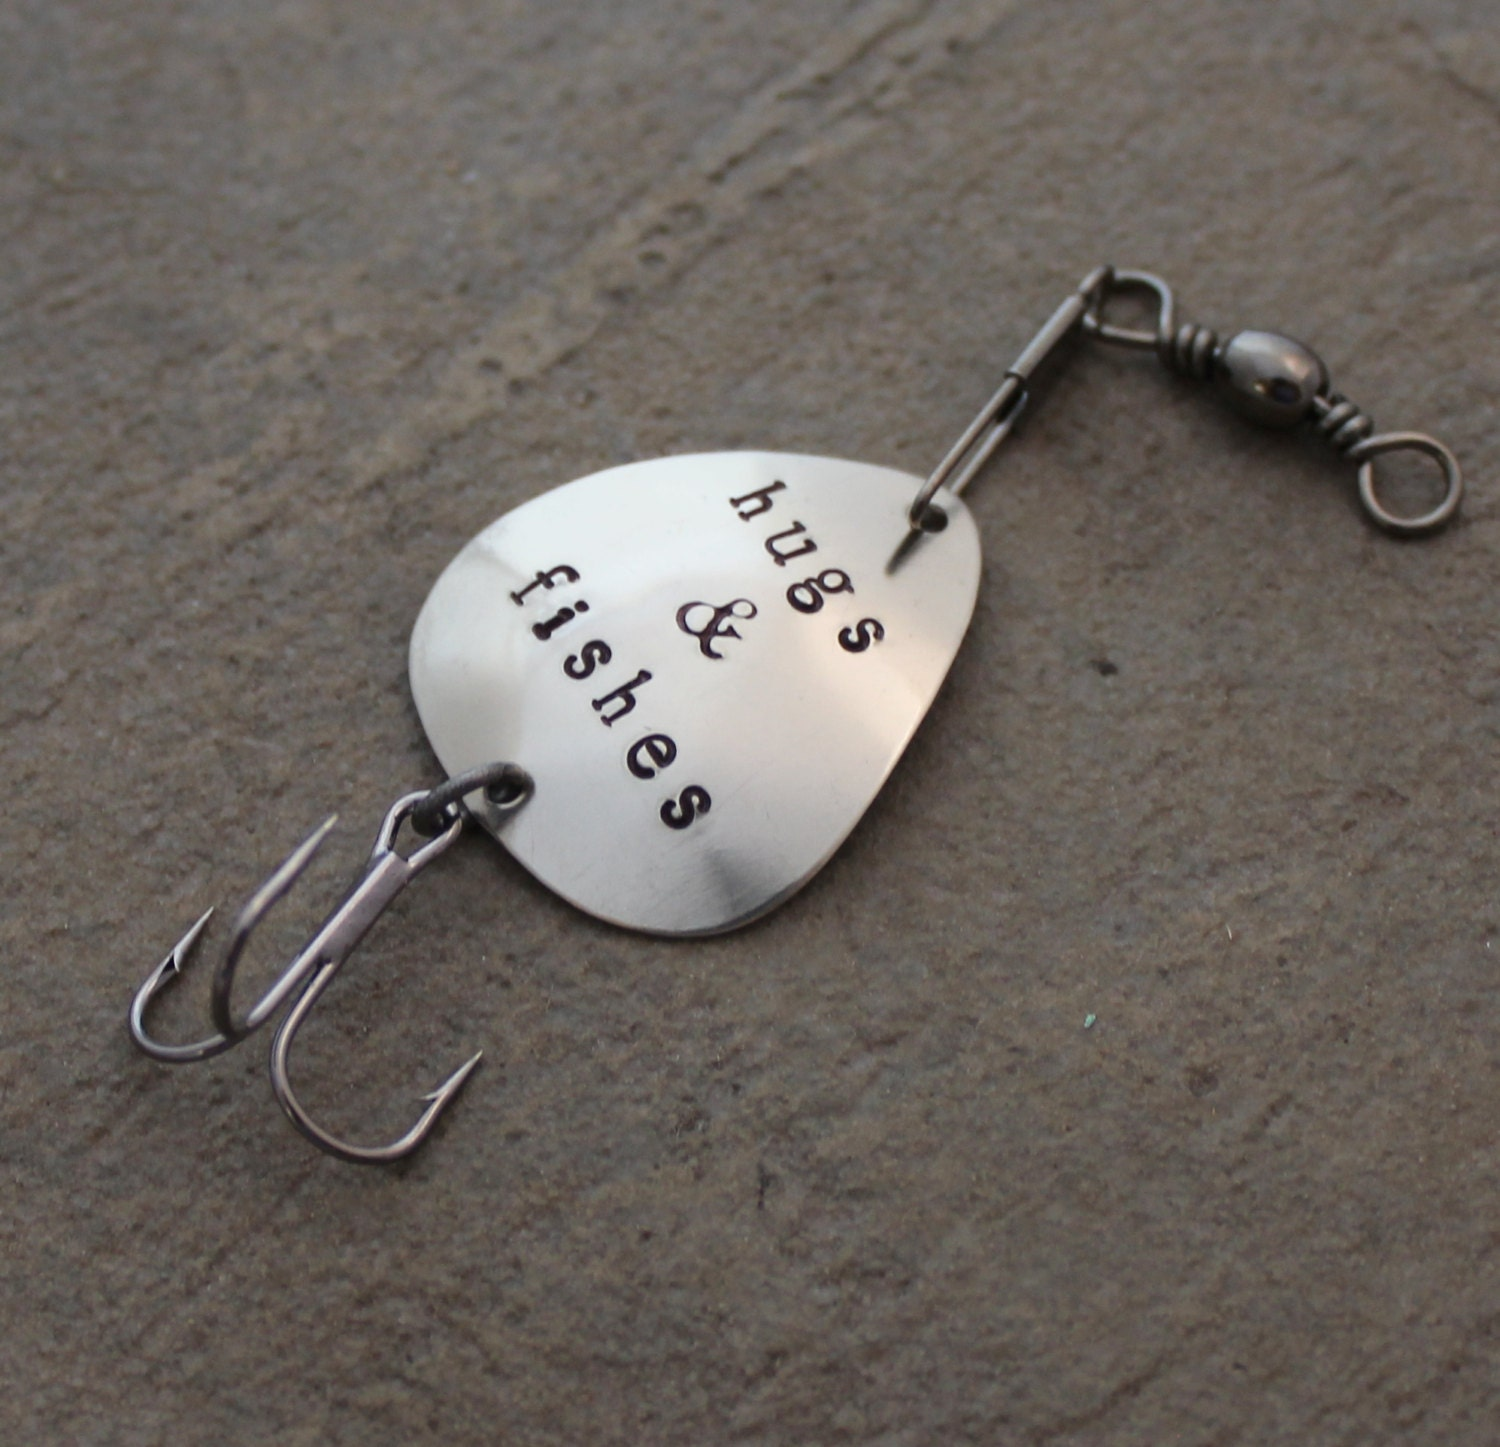 Personalized fishing lure fishing gear gift for dad for Unique fishing gifts